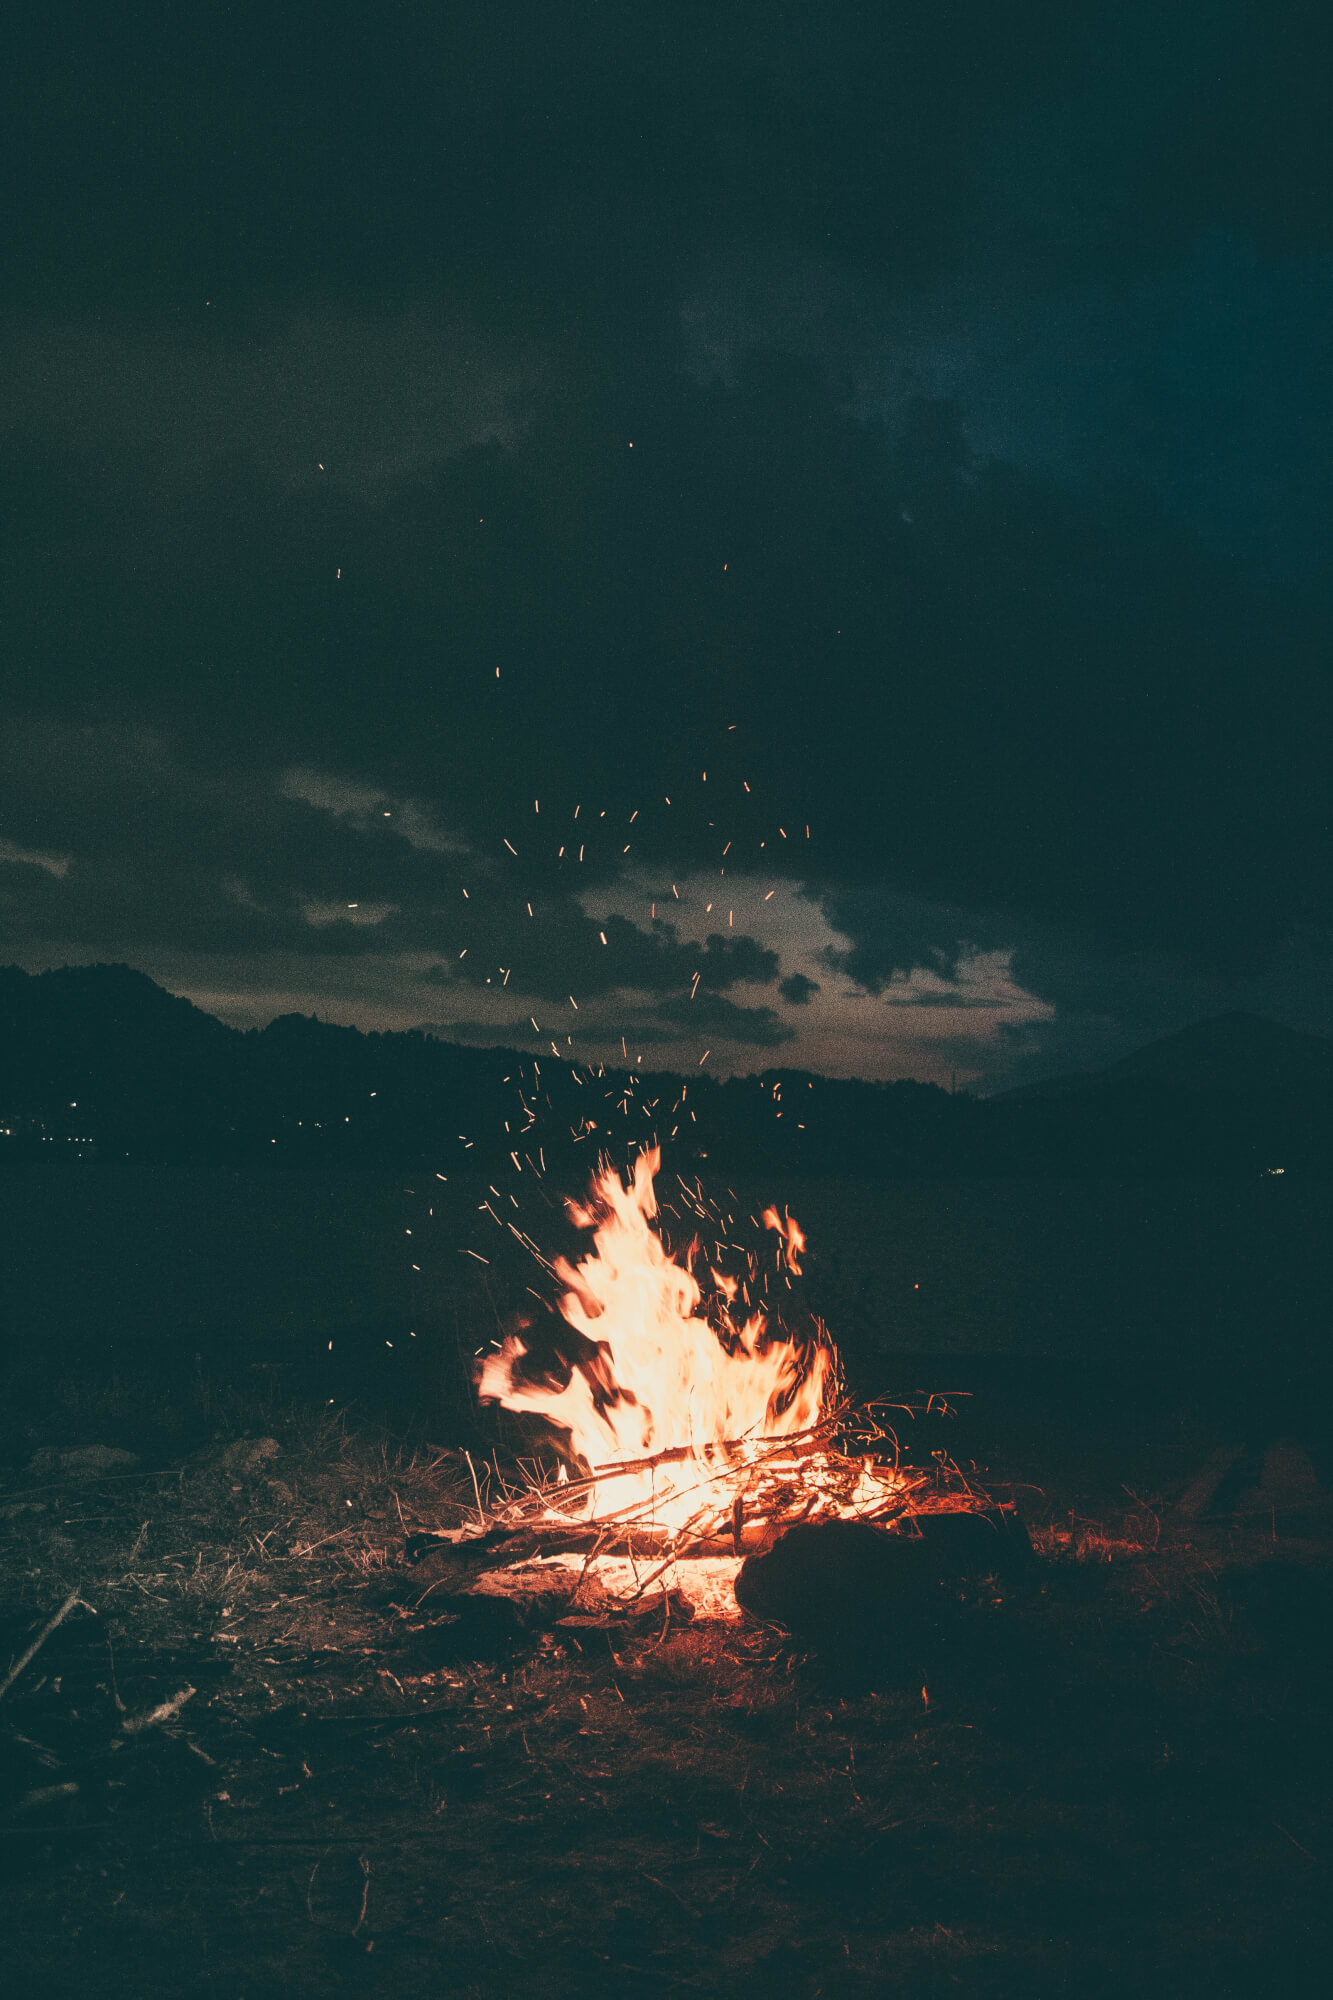 Mountain fire at night